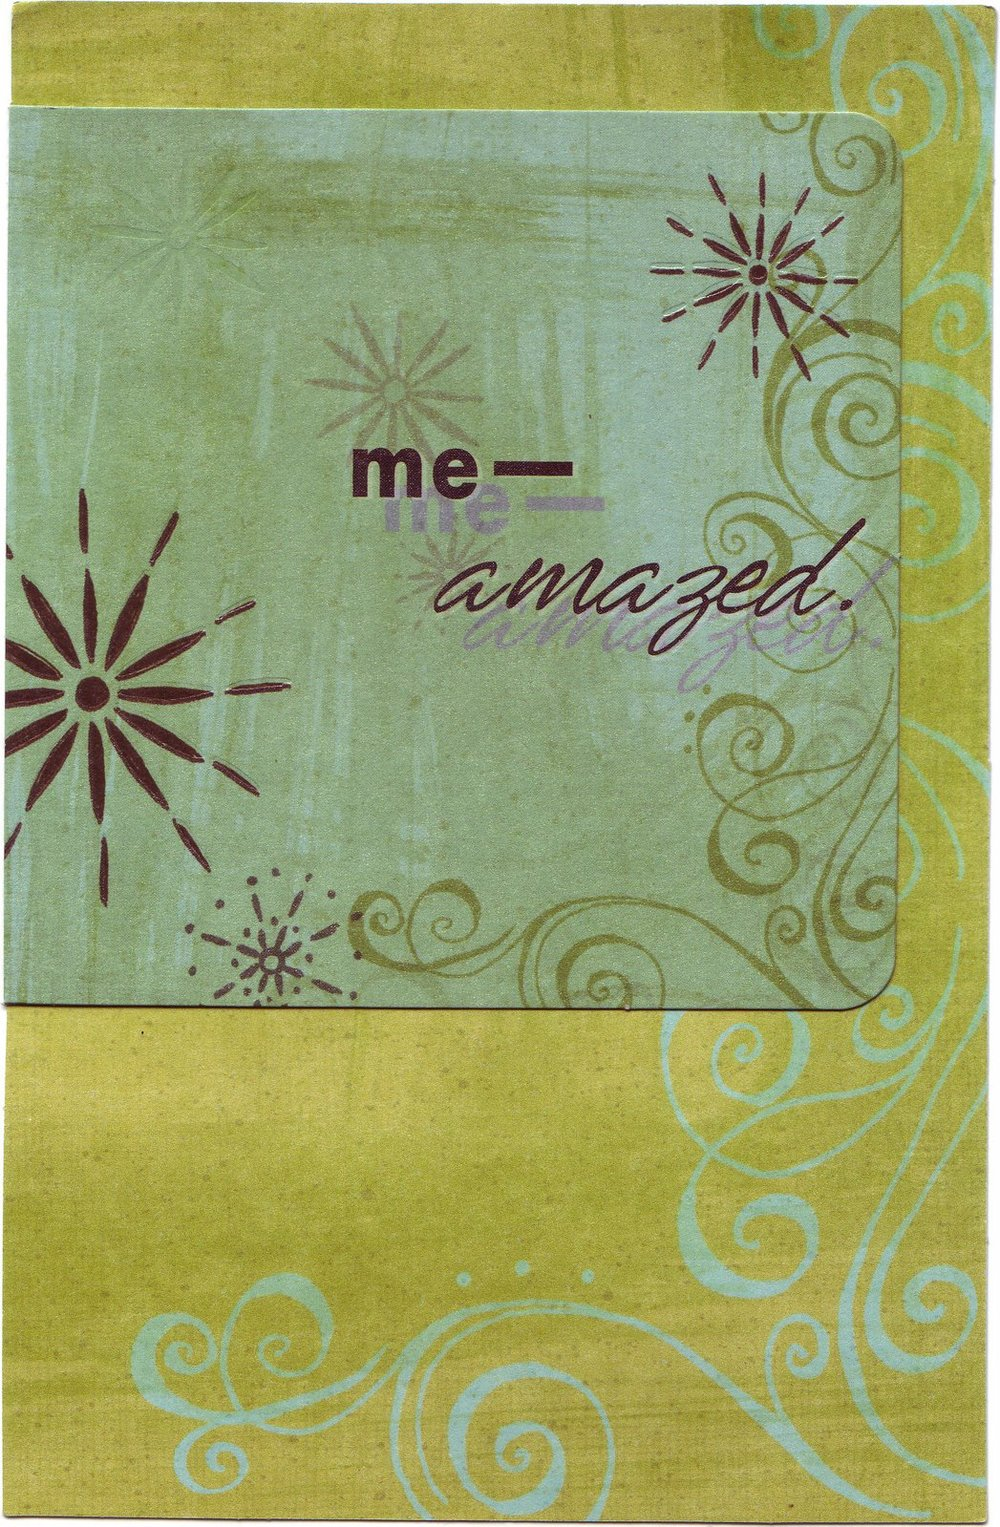 card sample2.jpg